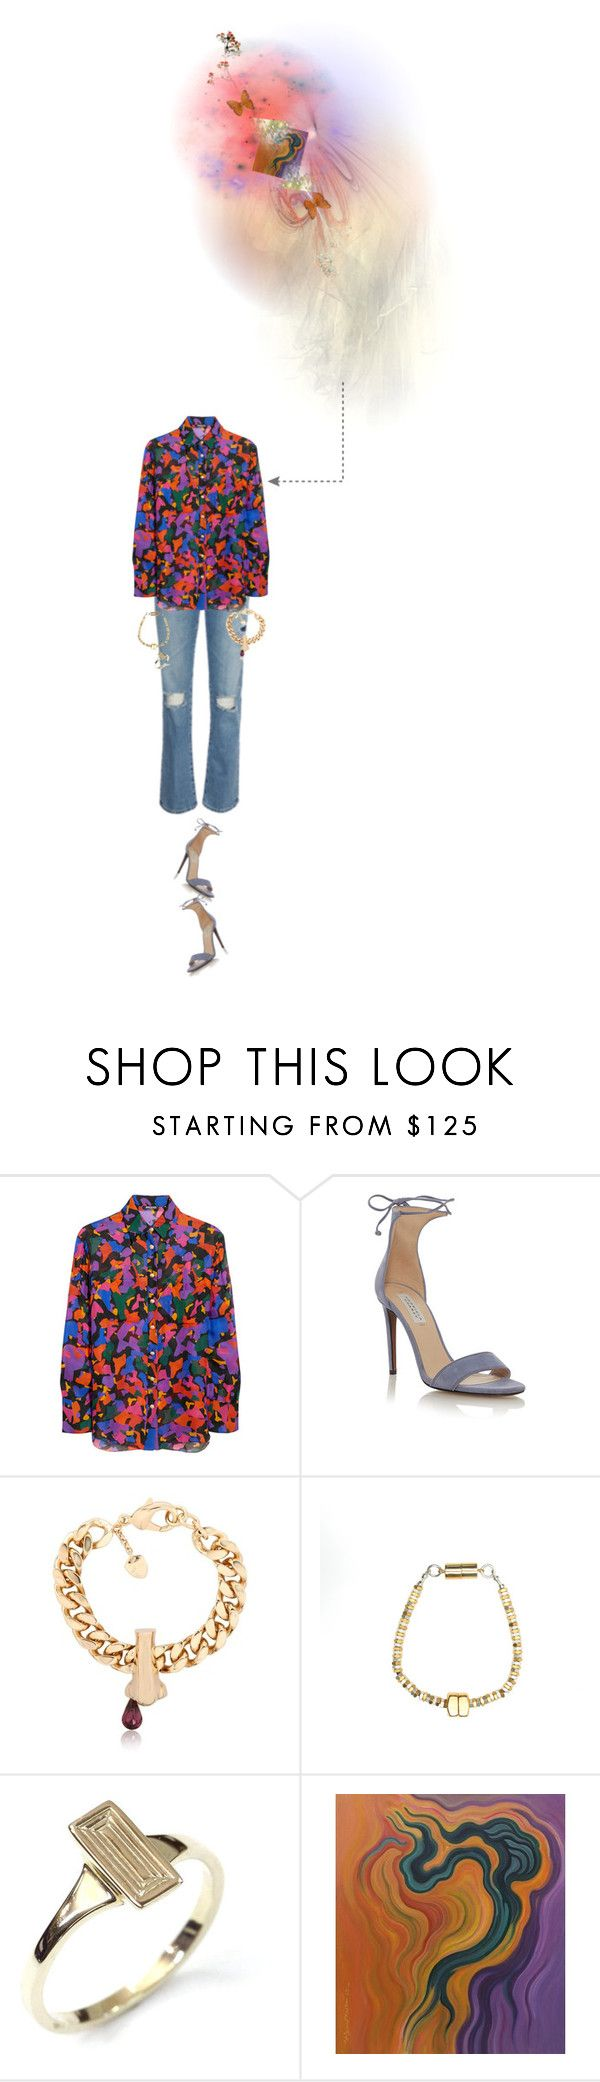 """""""Untitled #1426"""" by maja-z-94 ❤ liked on Polyvore featuring Balmain, Gabriela Hearst, Schield Collection, Alice Menter, Flake and NOVICA"""